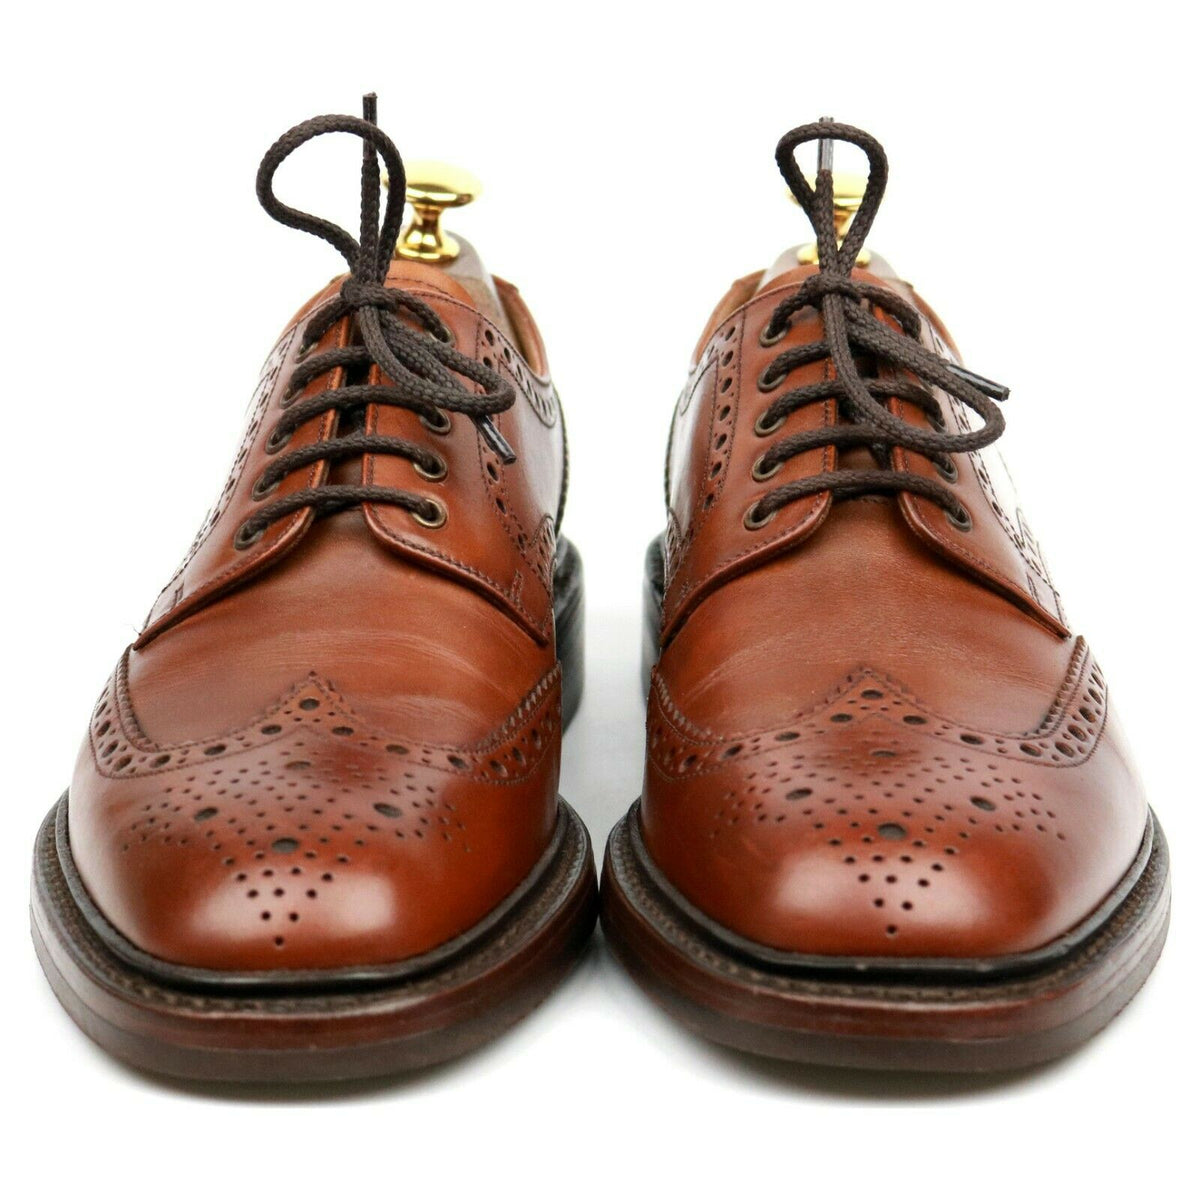 Loake 1880 'Chester' Brown Leather Derby Brogues UK 6.5 F